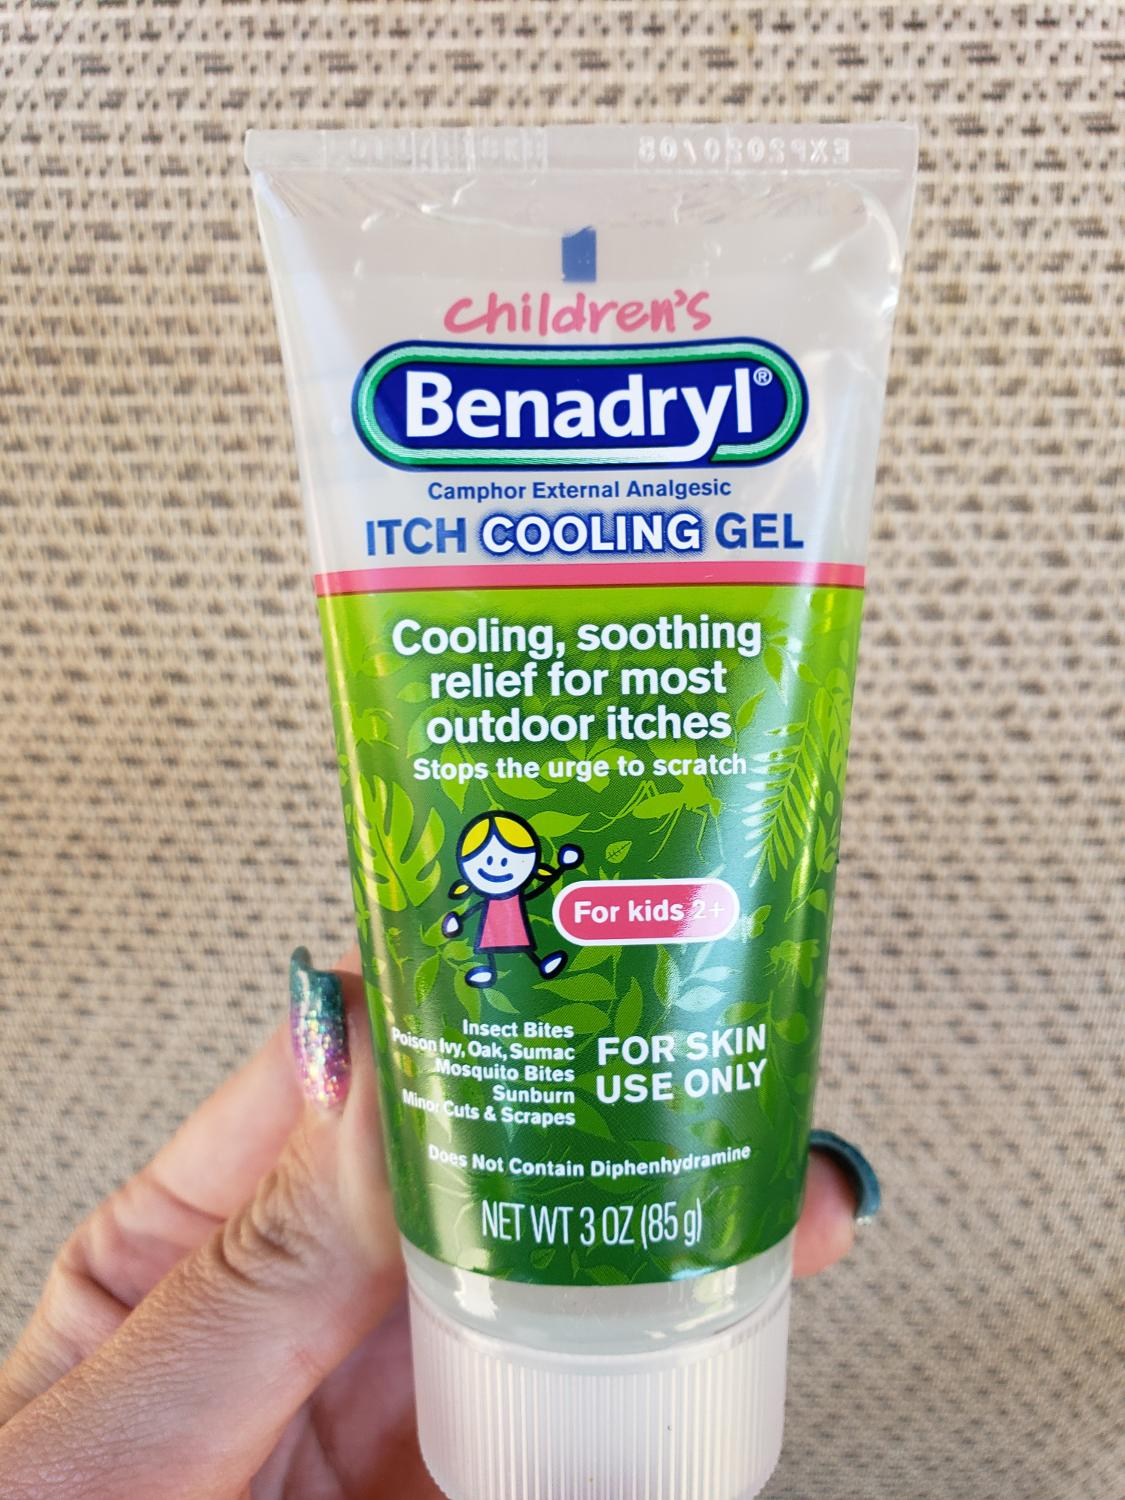 Children's benadryl itch cooling gel NEW AB MAY 24TH